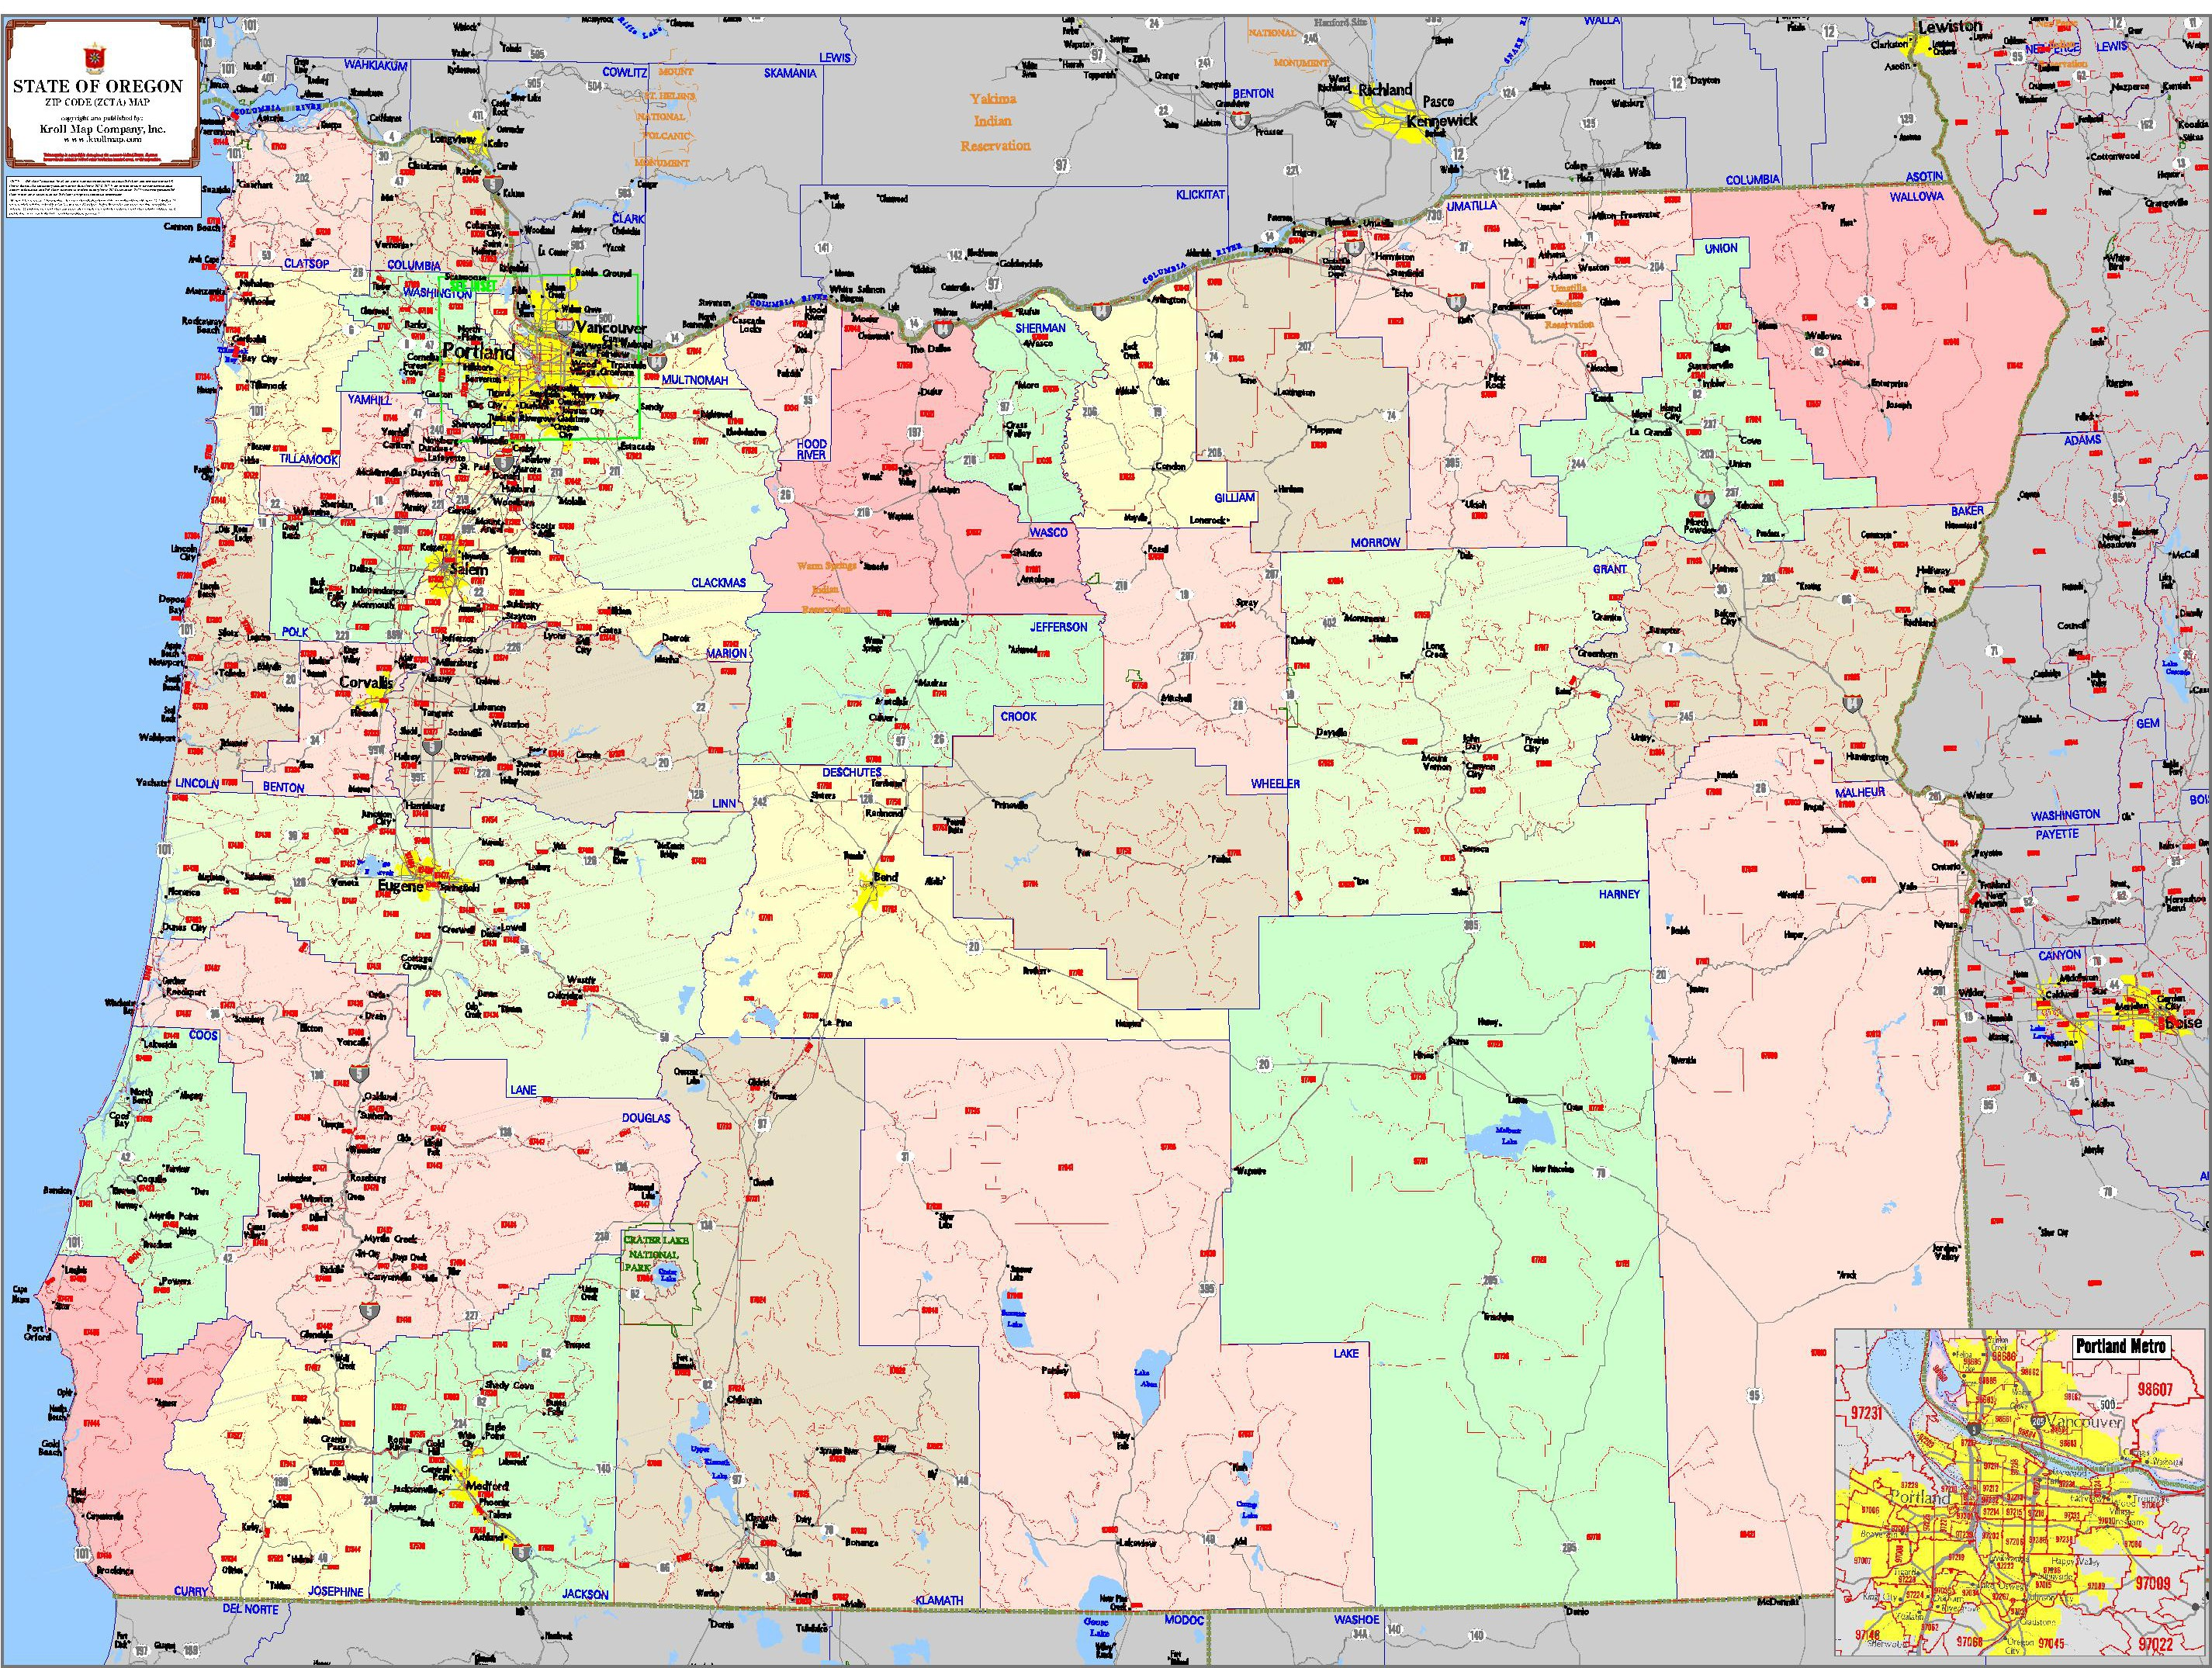 Oregon State Map With Counties.State Regional Level Mapping Kroll Map Company